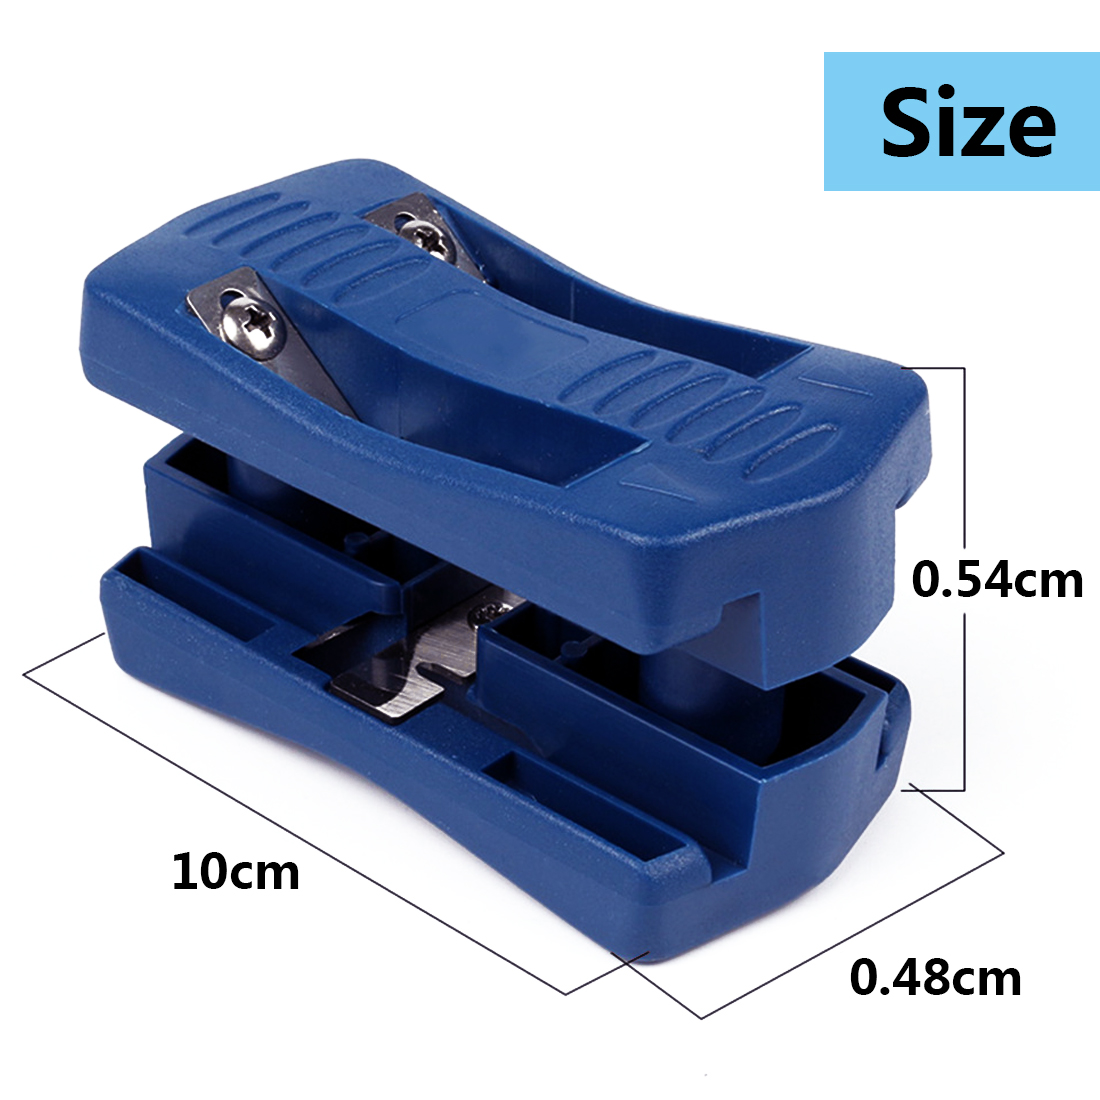 Banding Machine Set 9.5x4.8 Plastic Double Edge Trimmer Wood Head And Tail Trimming Carpenter Hardware Woodworking Hand Tool